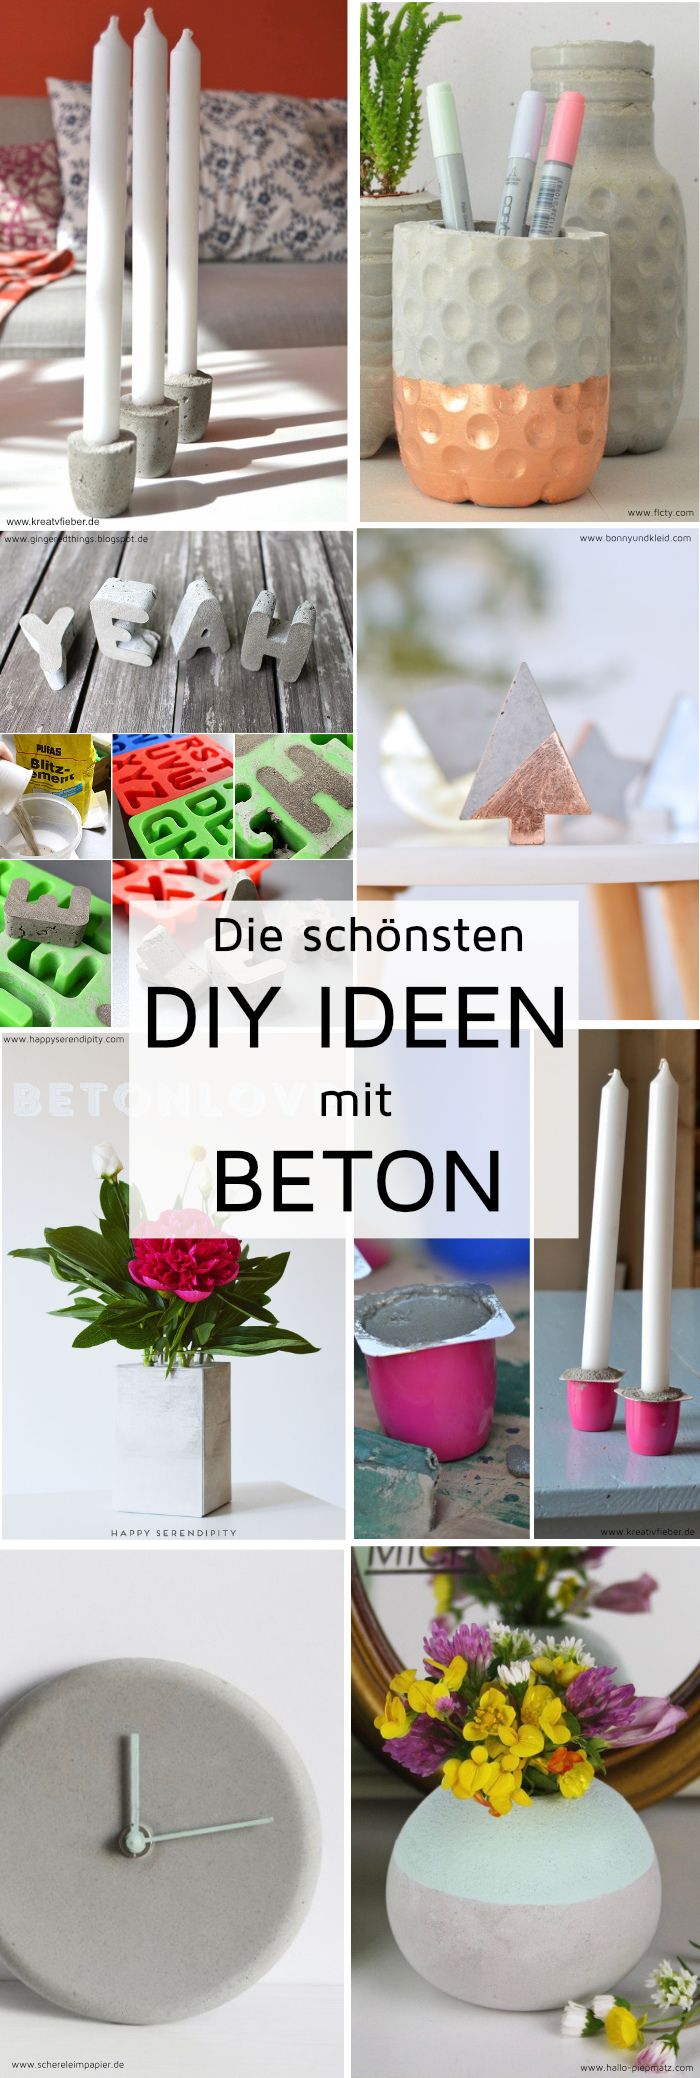 die sch nsten diy ideen mit beton beton deko beton basteln und diy ideen. Black Bedroom Furniture Sets. Home Design Ideas